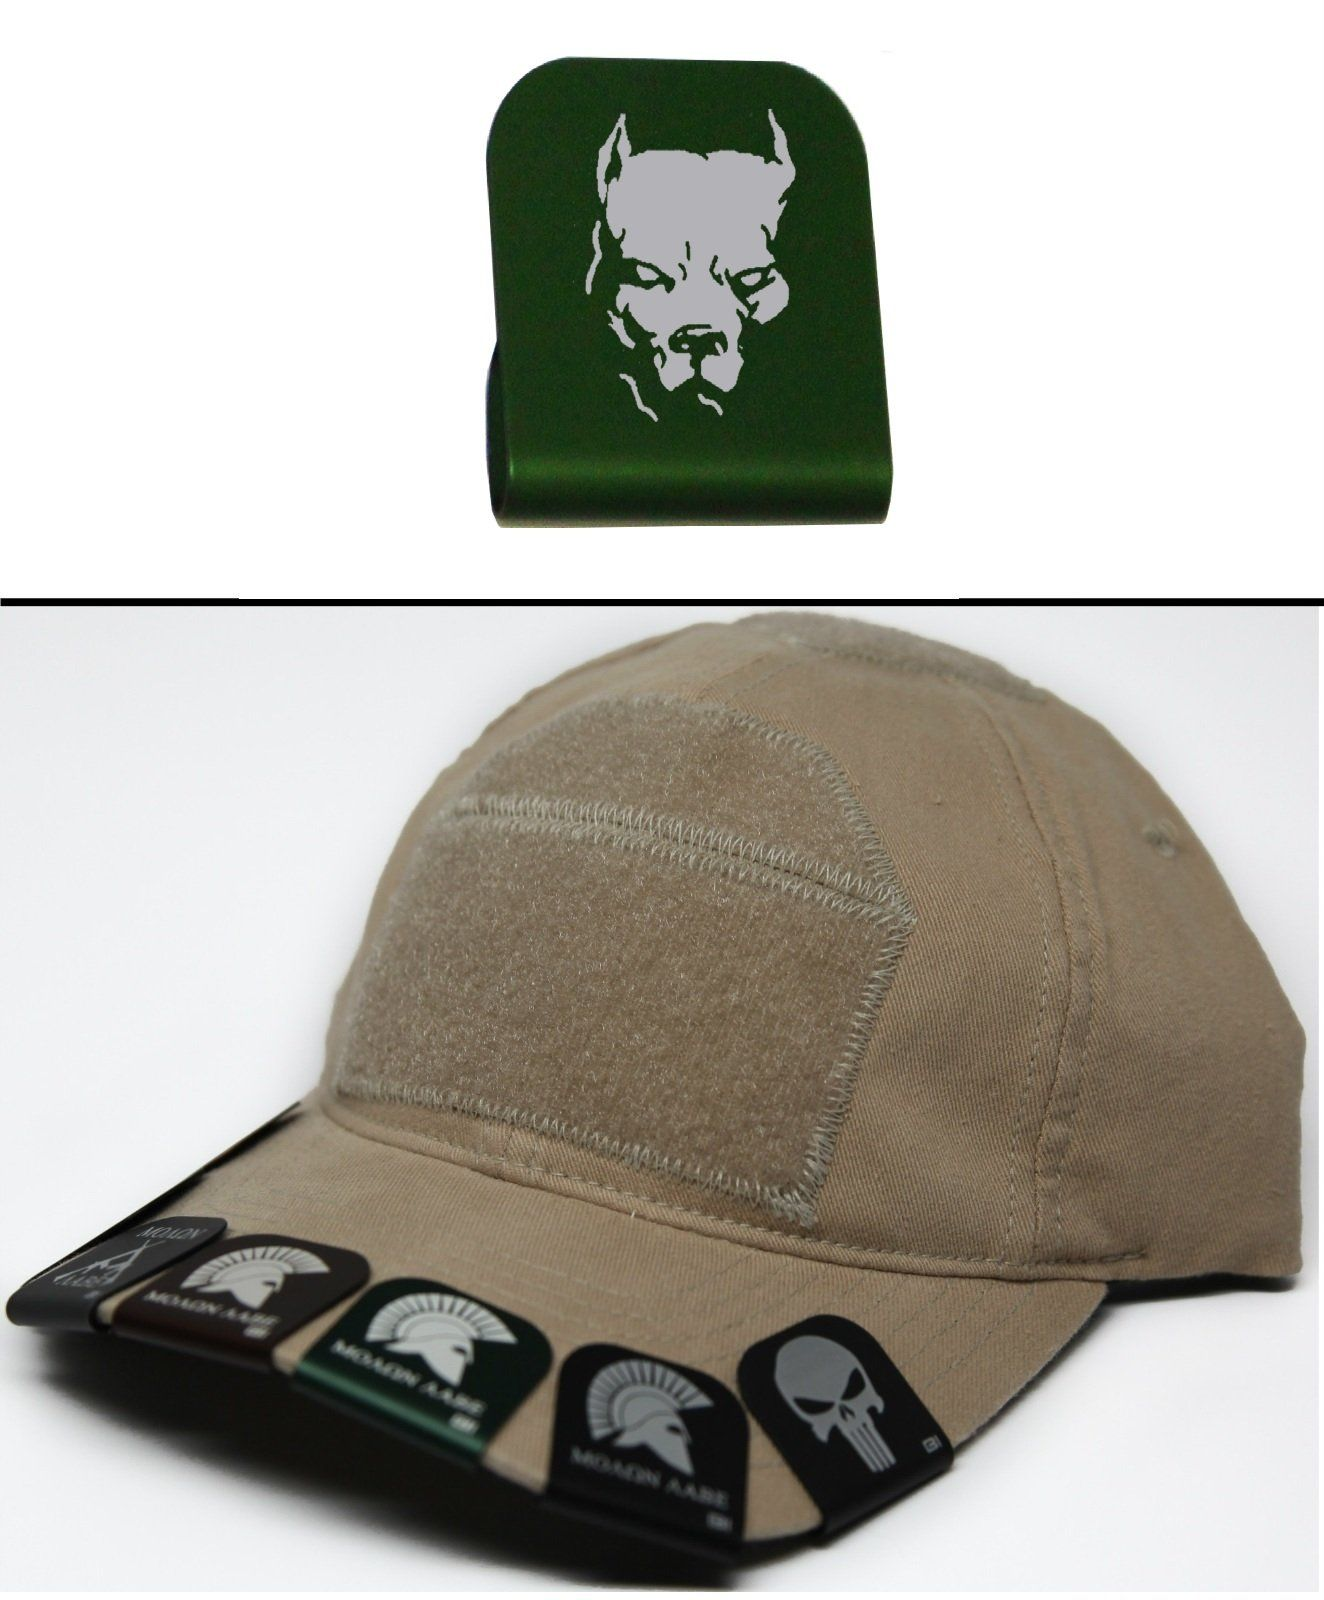 92c6f8b072f Ultimate Arms Gear PITBULL DOG Hat Cap Crown Brim-It